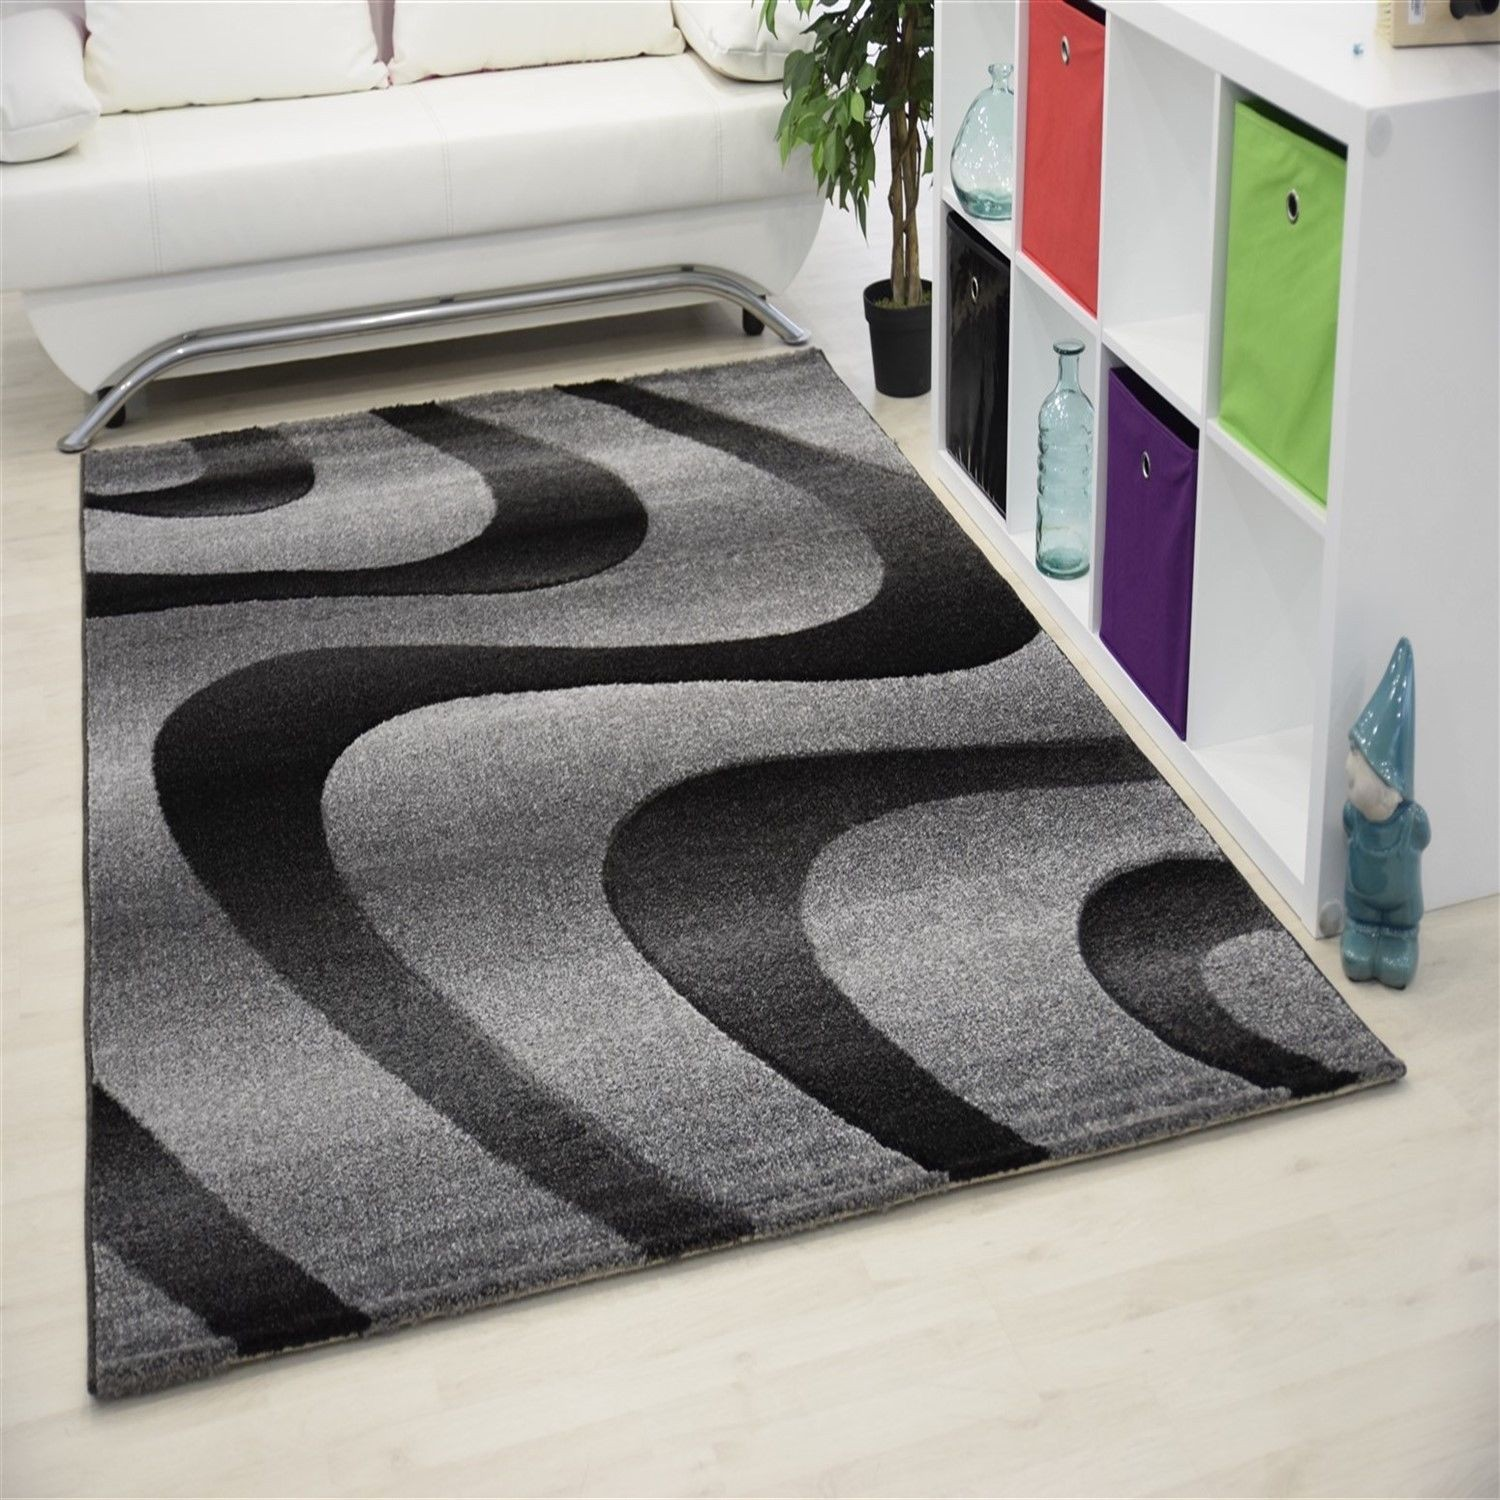 Grand tapis salon pas cher 3 id es de d coration - Grand tapis de salon pas cher ...